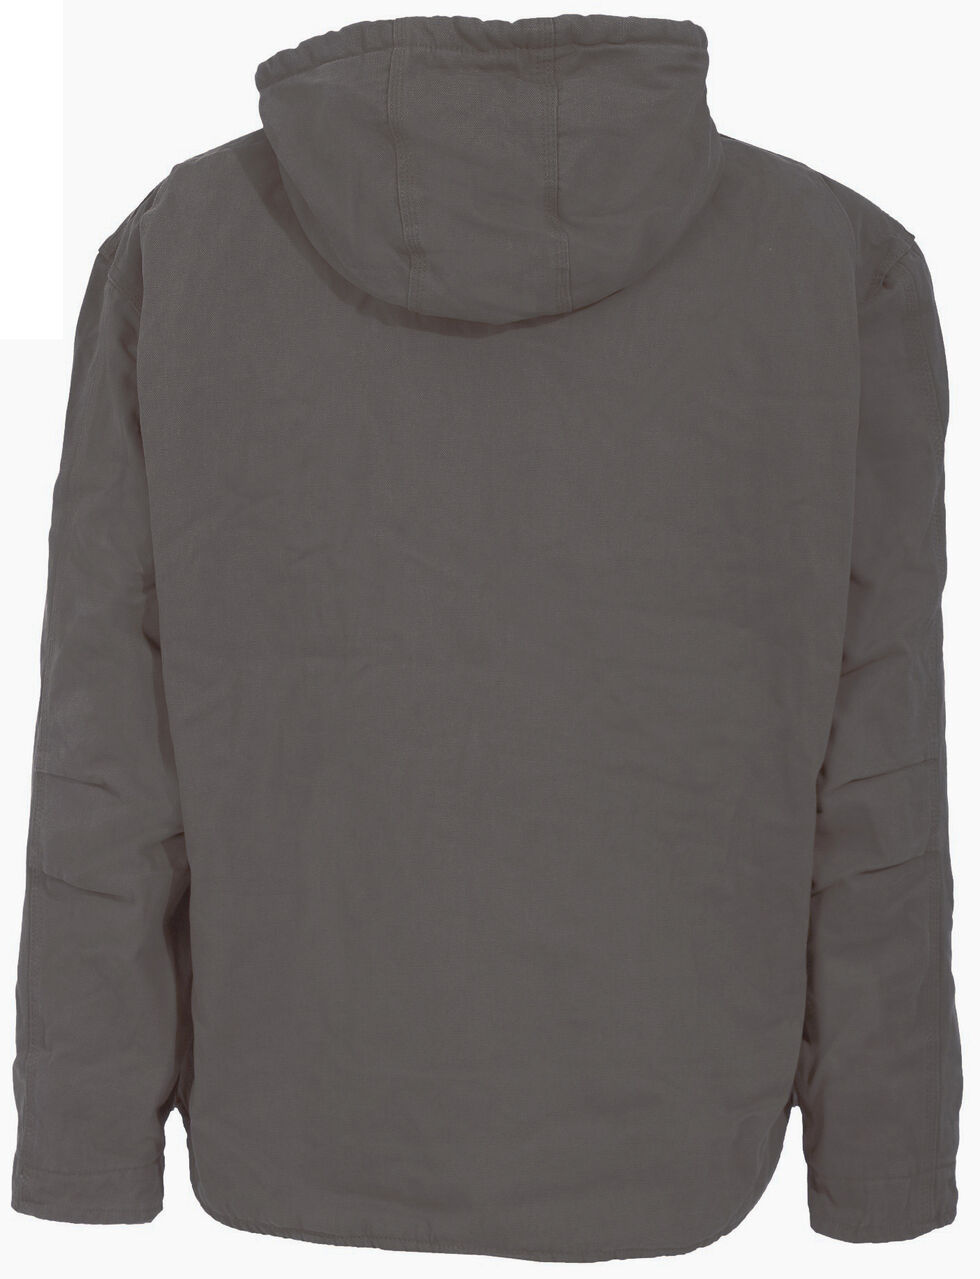 Berne Washed Hooded Work Coat - 3XL and 4XL, Grey, hi-res